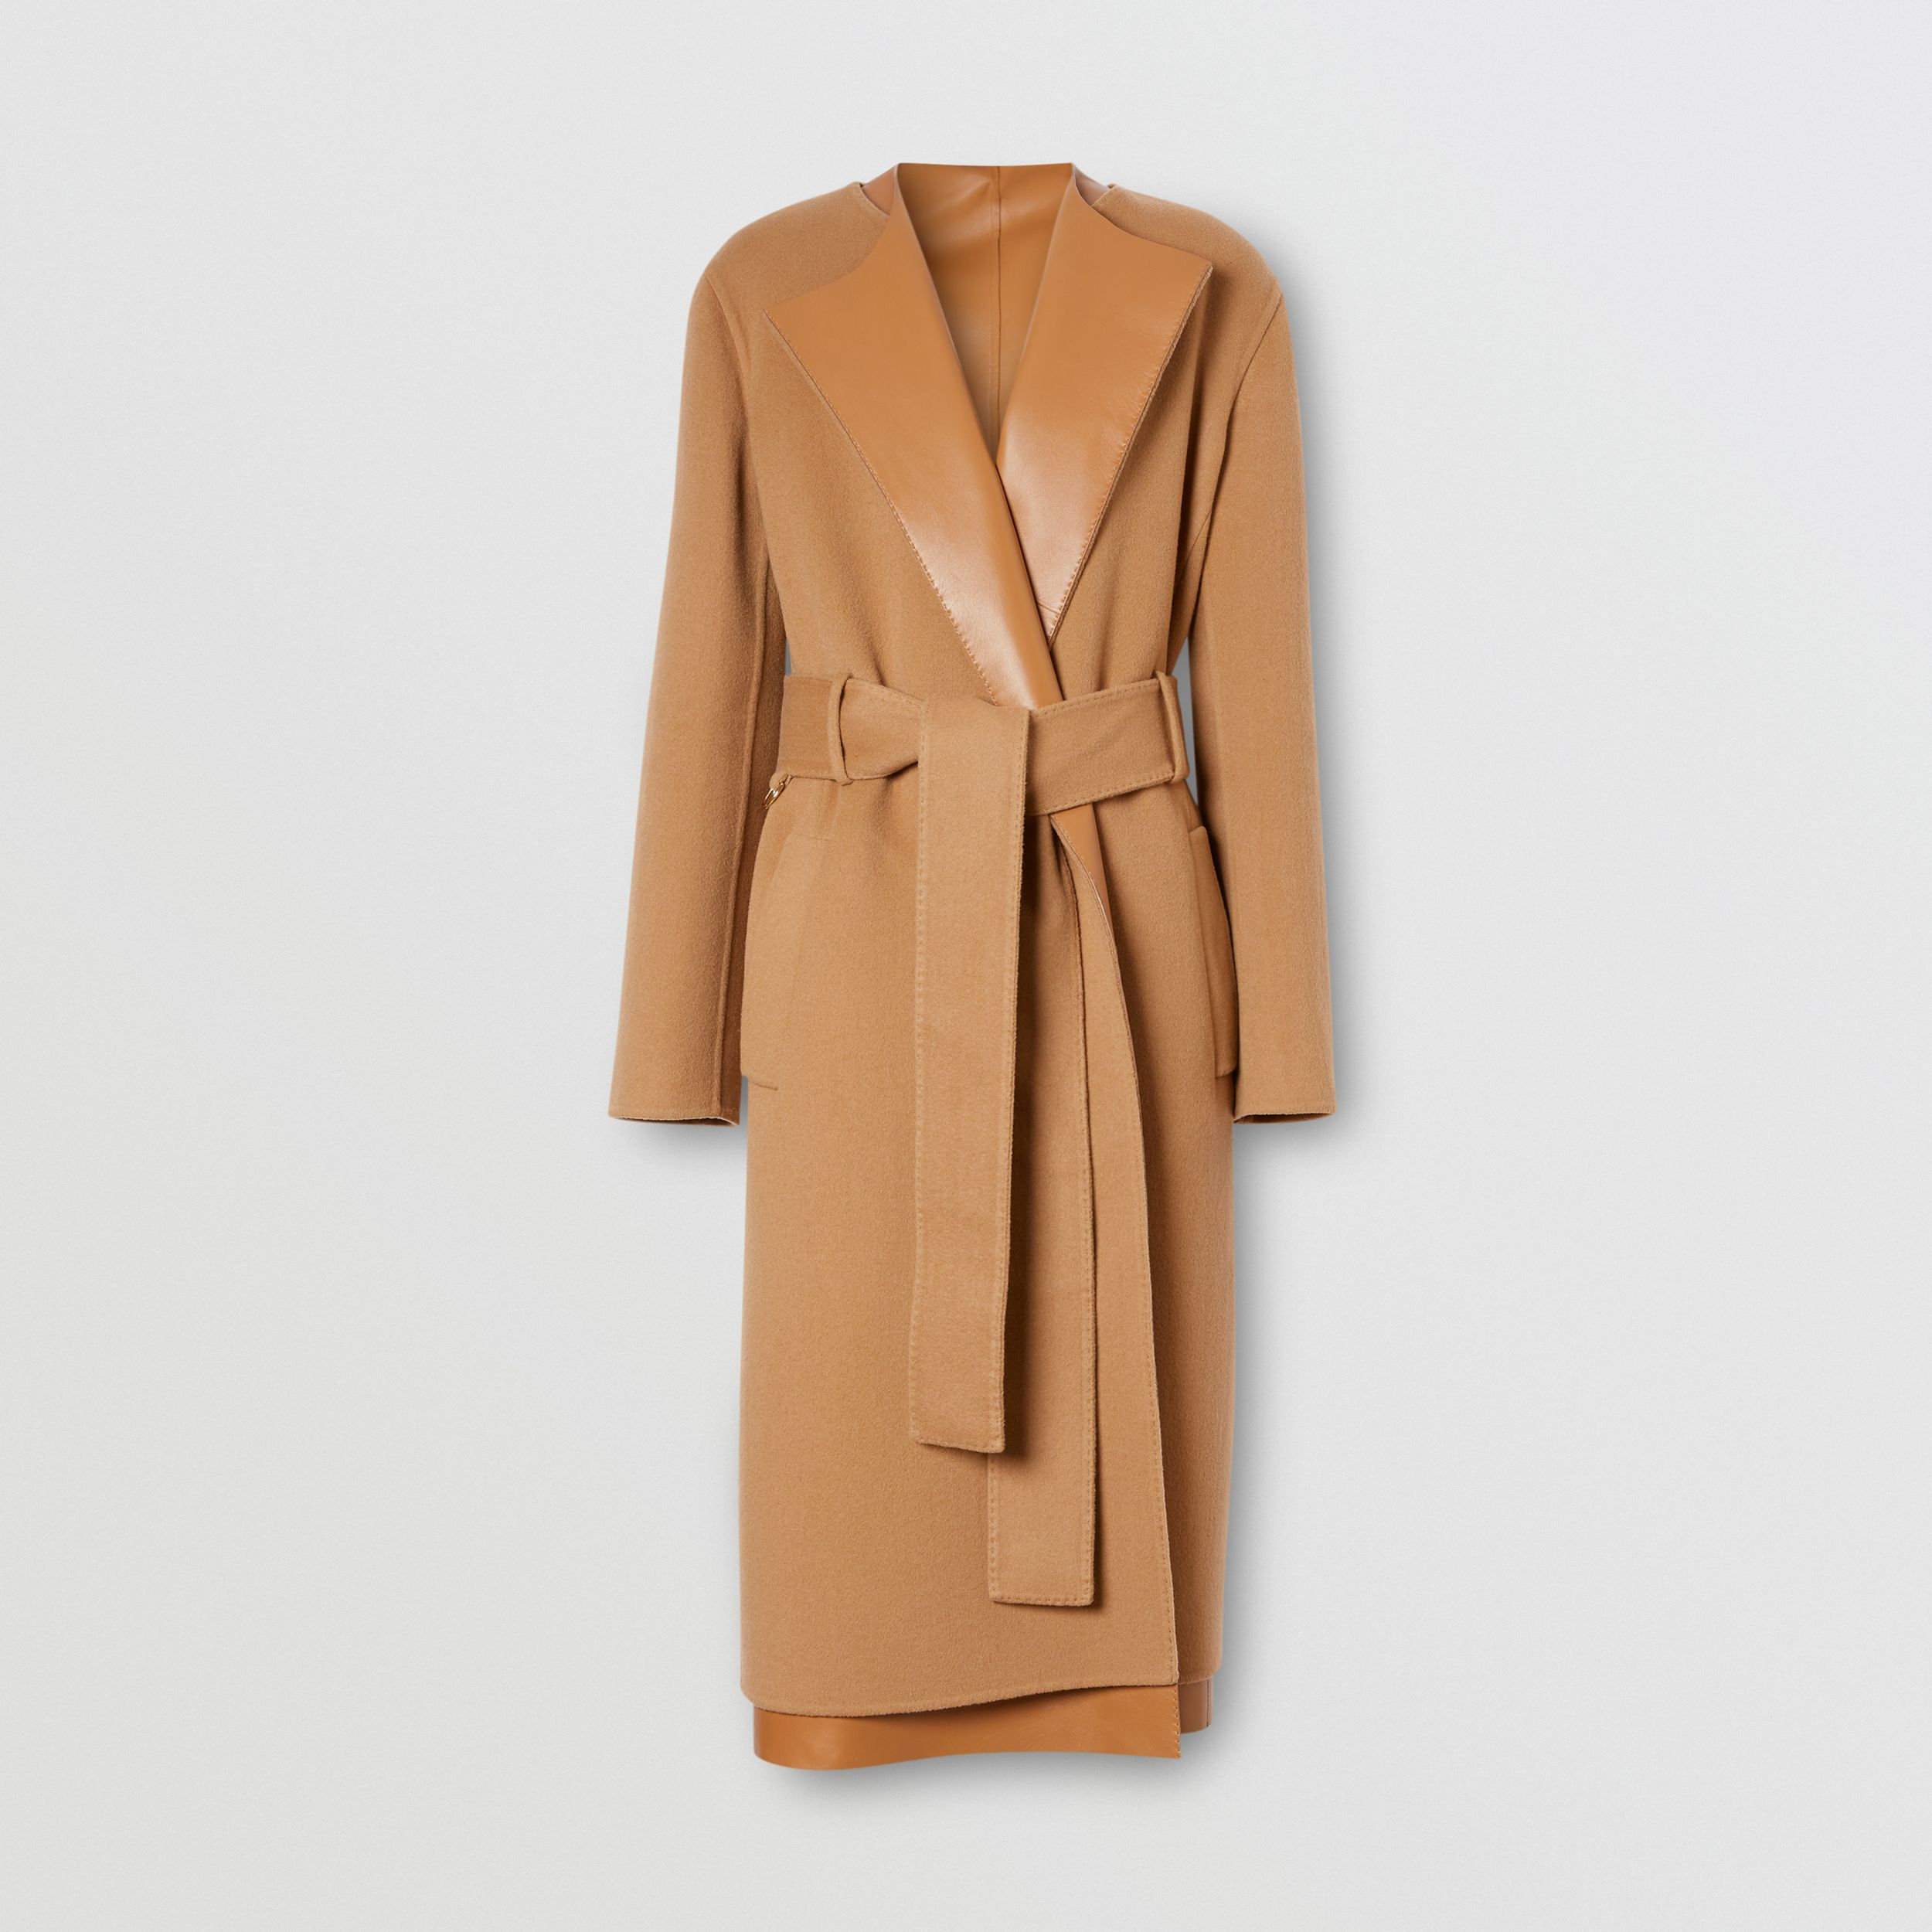 Double-faced Cashmere and Lambskin Wrap Coat in Camel - Women | Burberry - 4